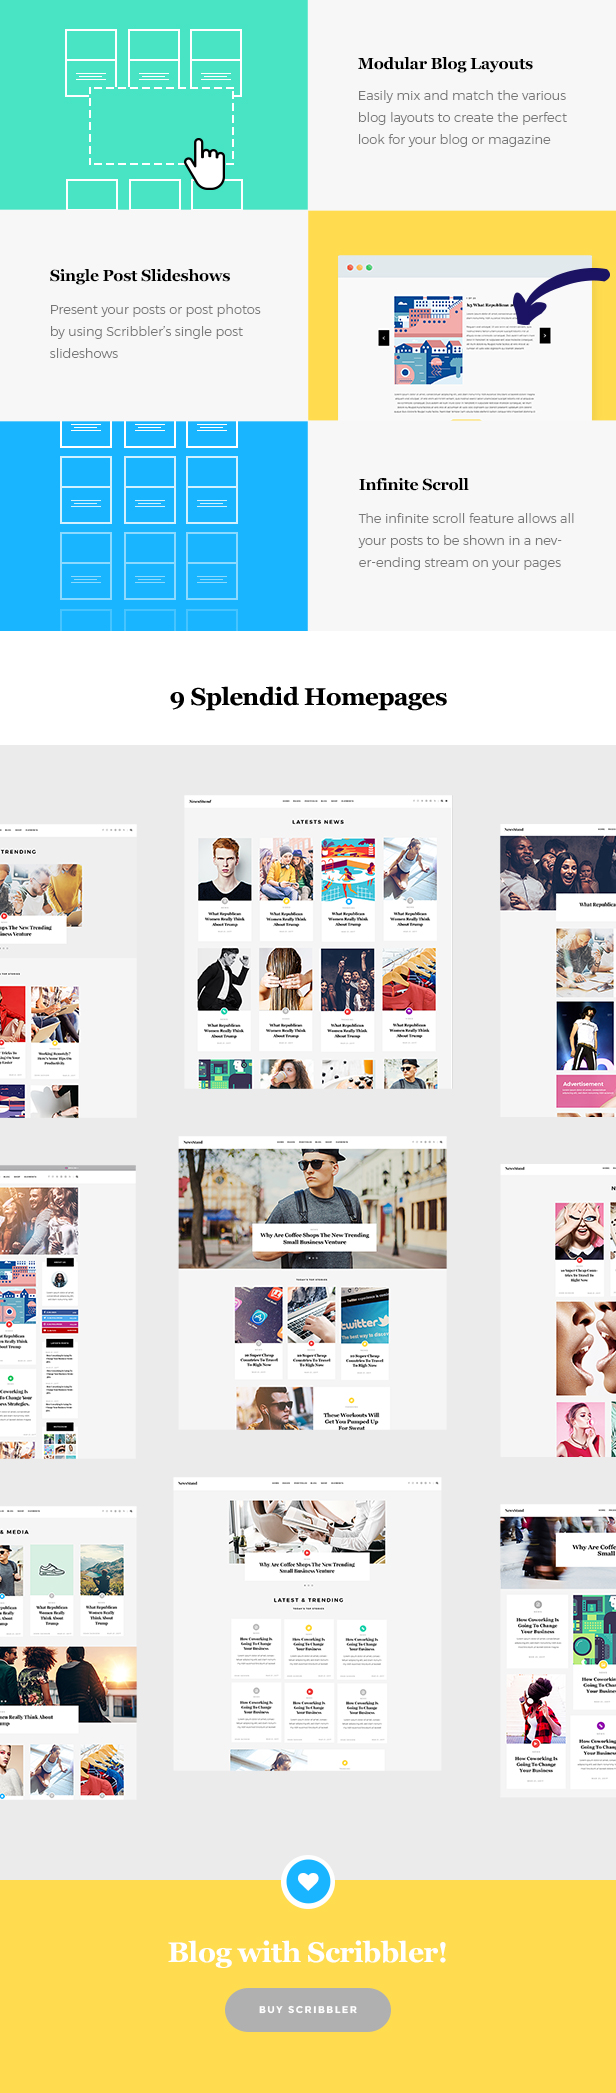 WordPress theme Scribbler - A Simple Theme for Blogs and Magazines (Blog / Magazine)